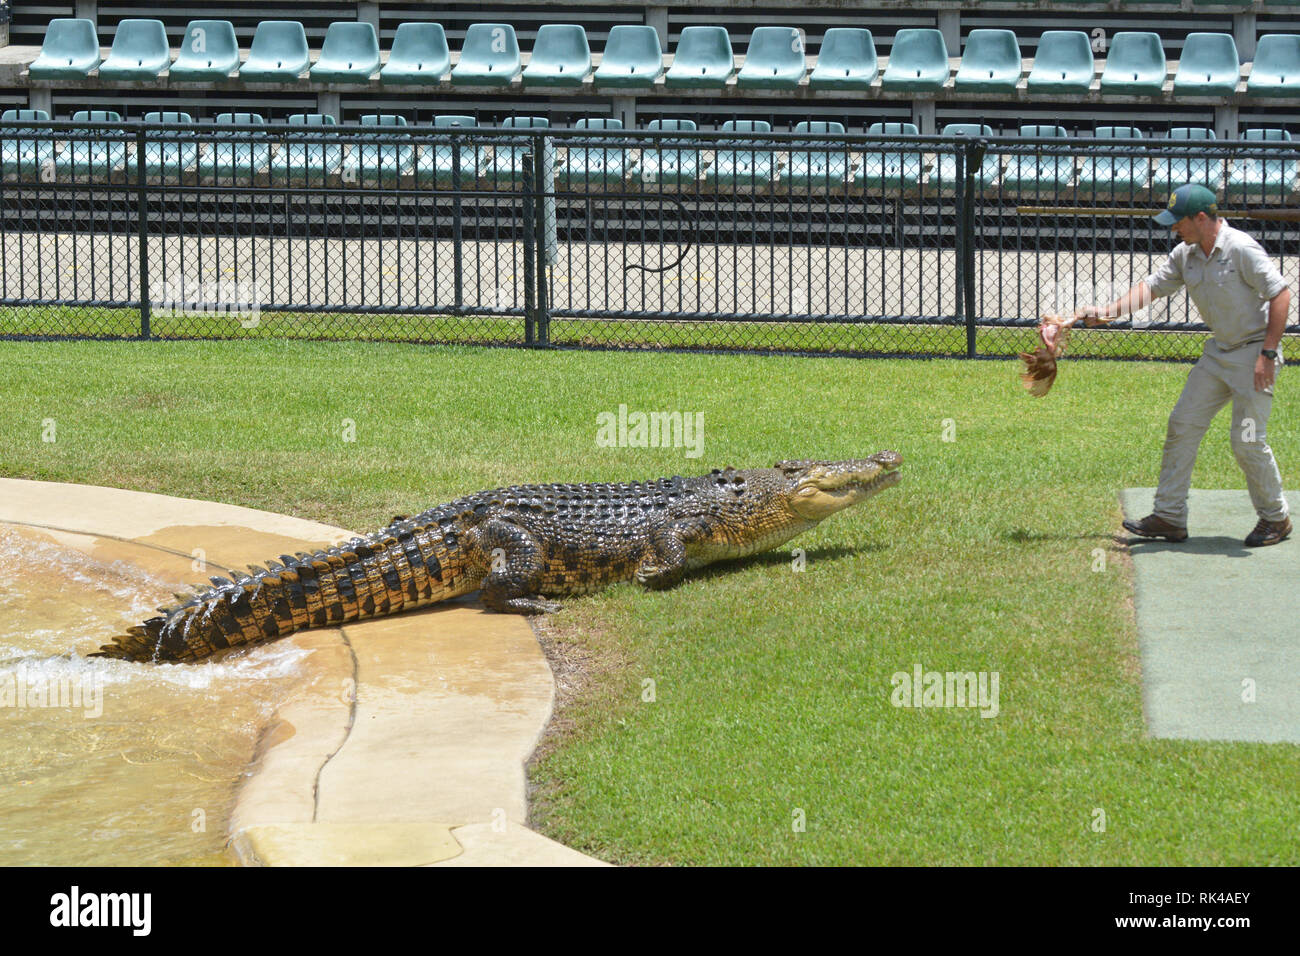 Trainer feeding crocodile at Australia Zoo.Crocodile trainer consider as is one of the most dangerous jobs in the world - Stock Image